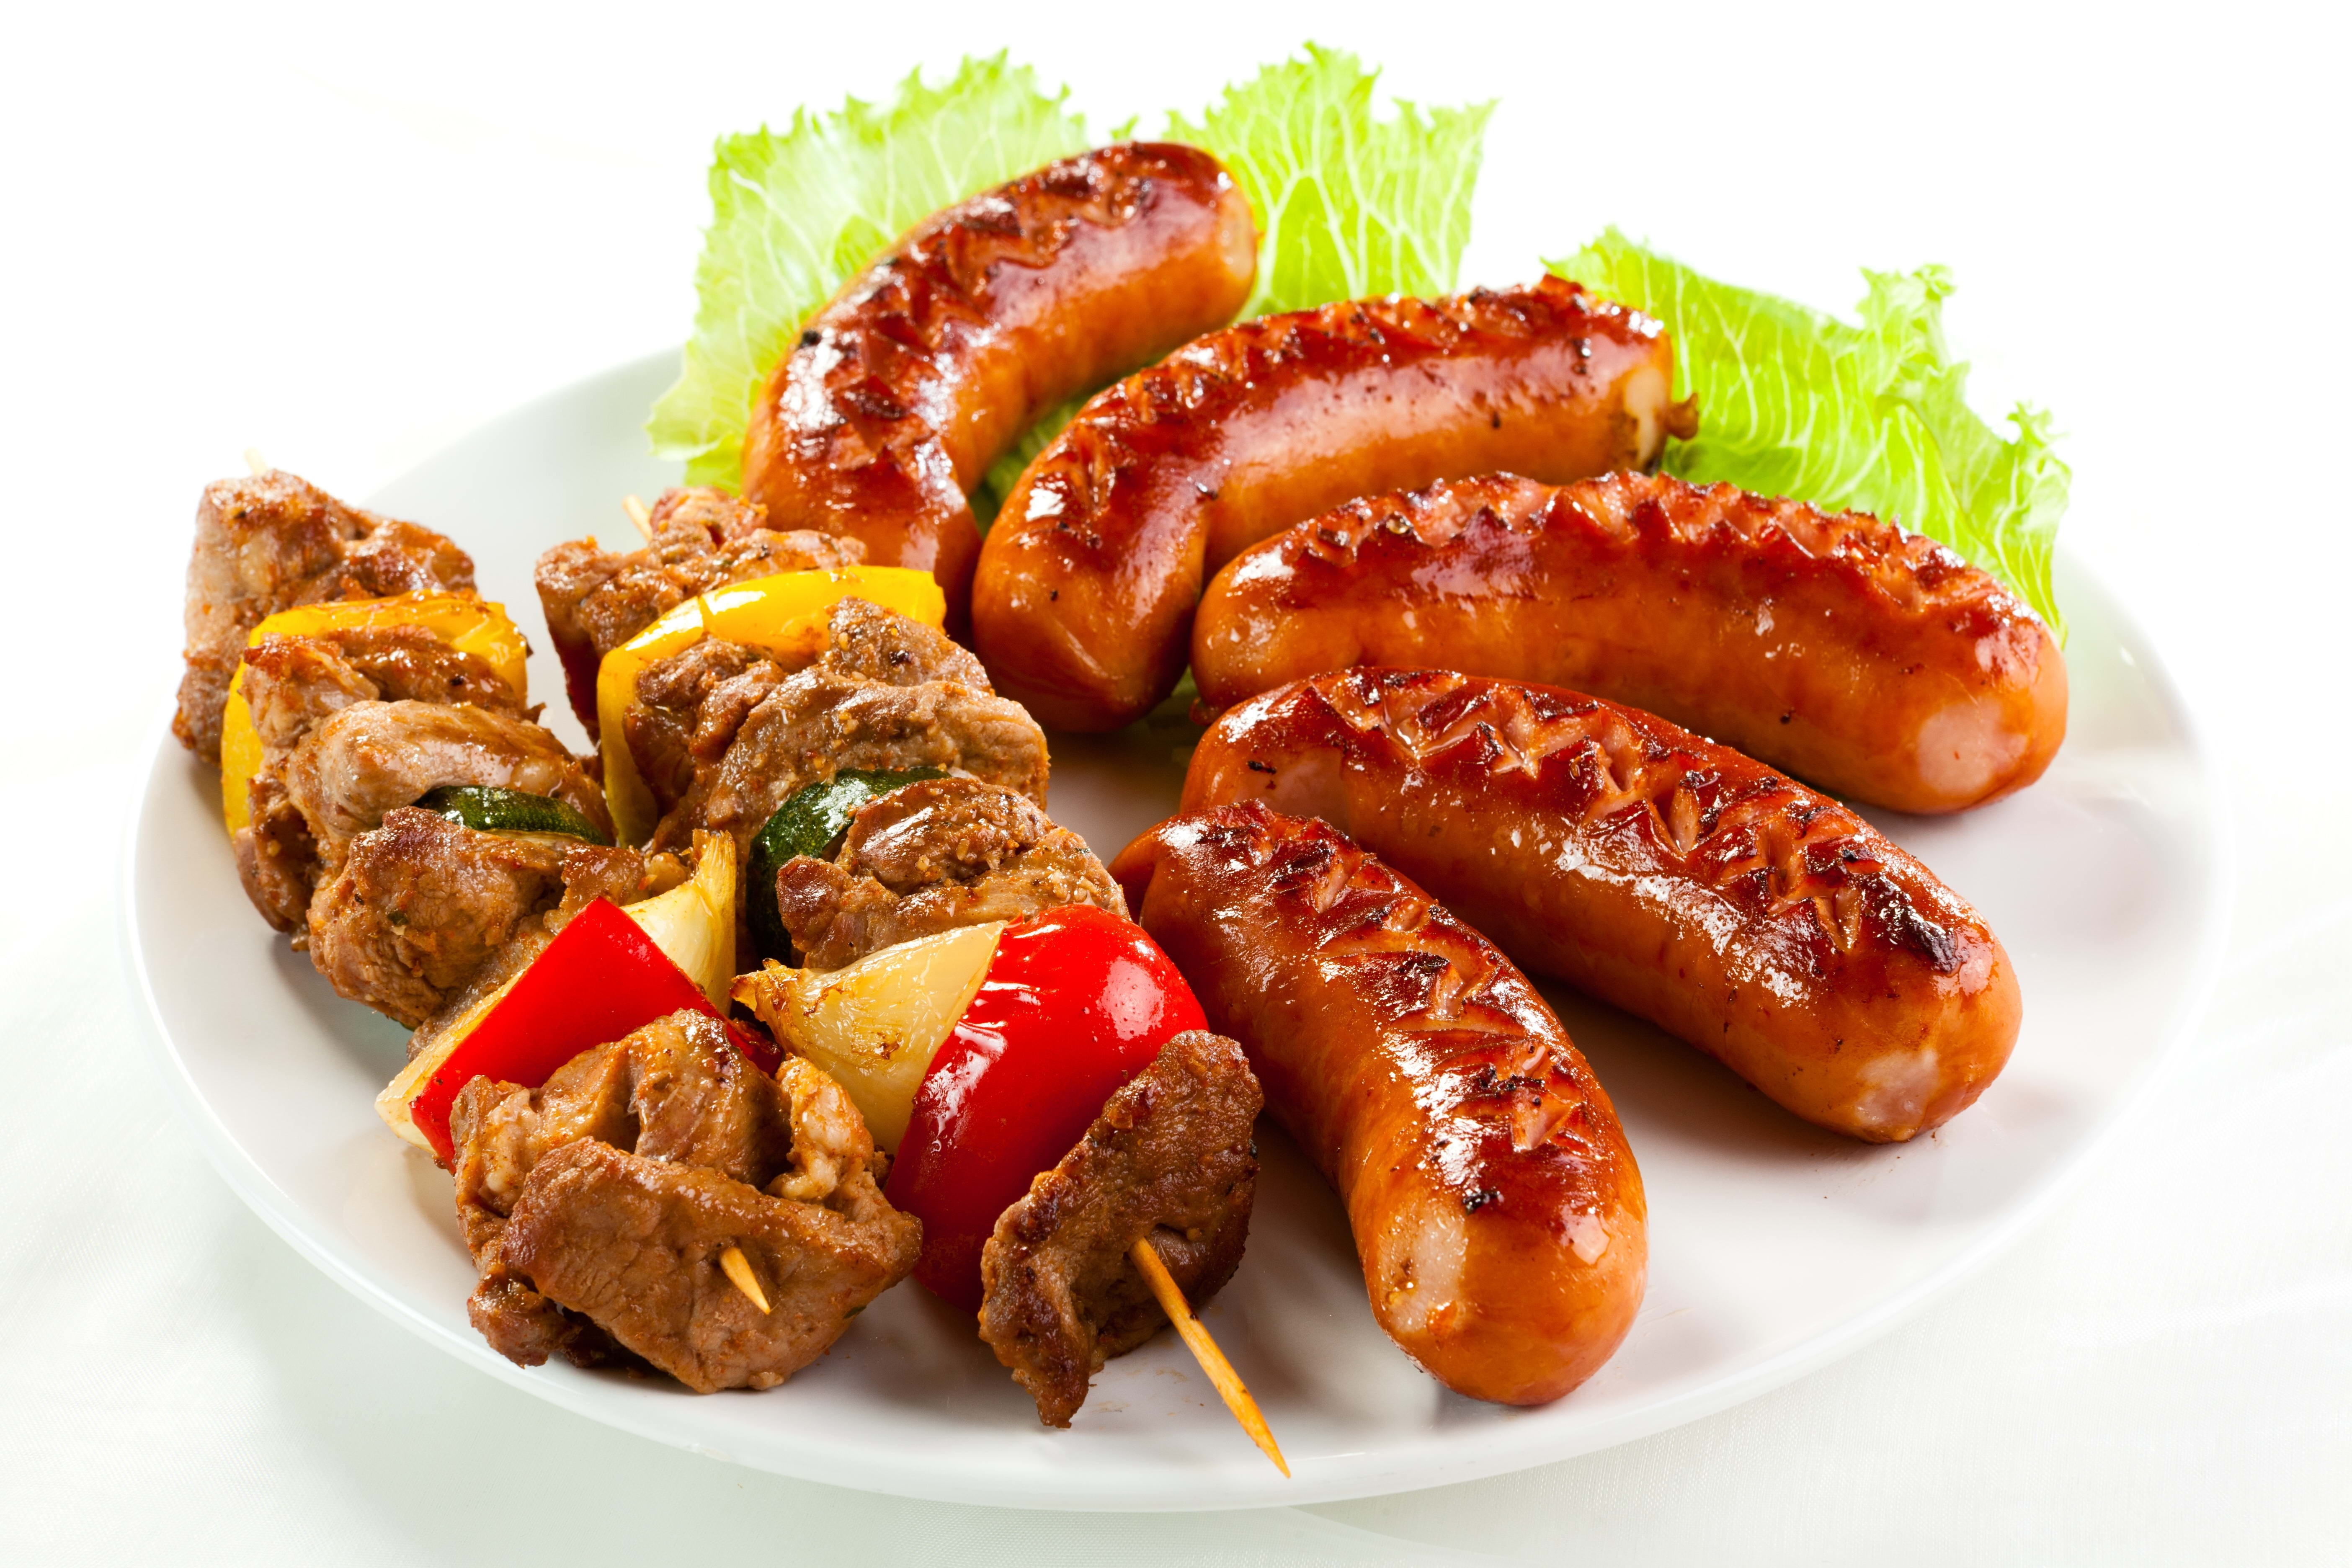 Download wallpaper 5616x3744 kebabs sausages herbs plate white 5616x3744